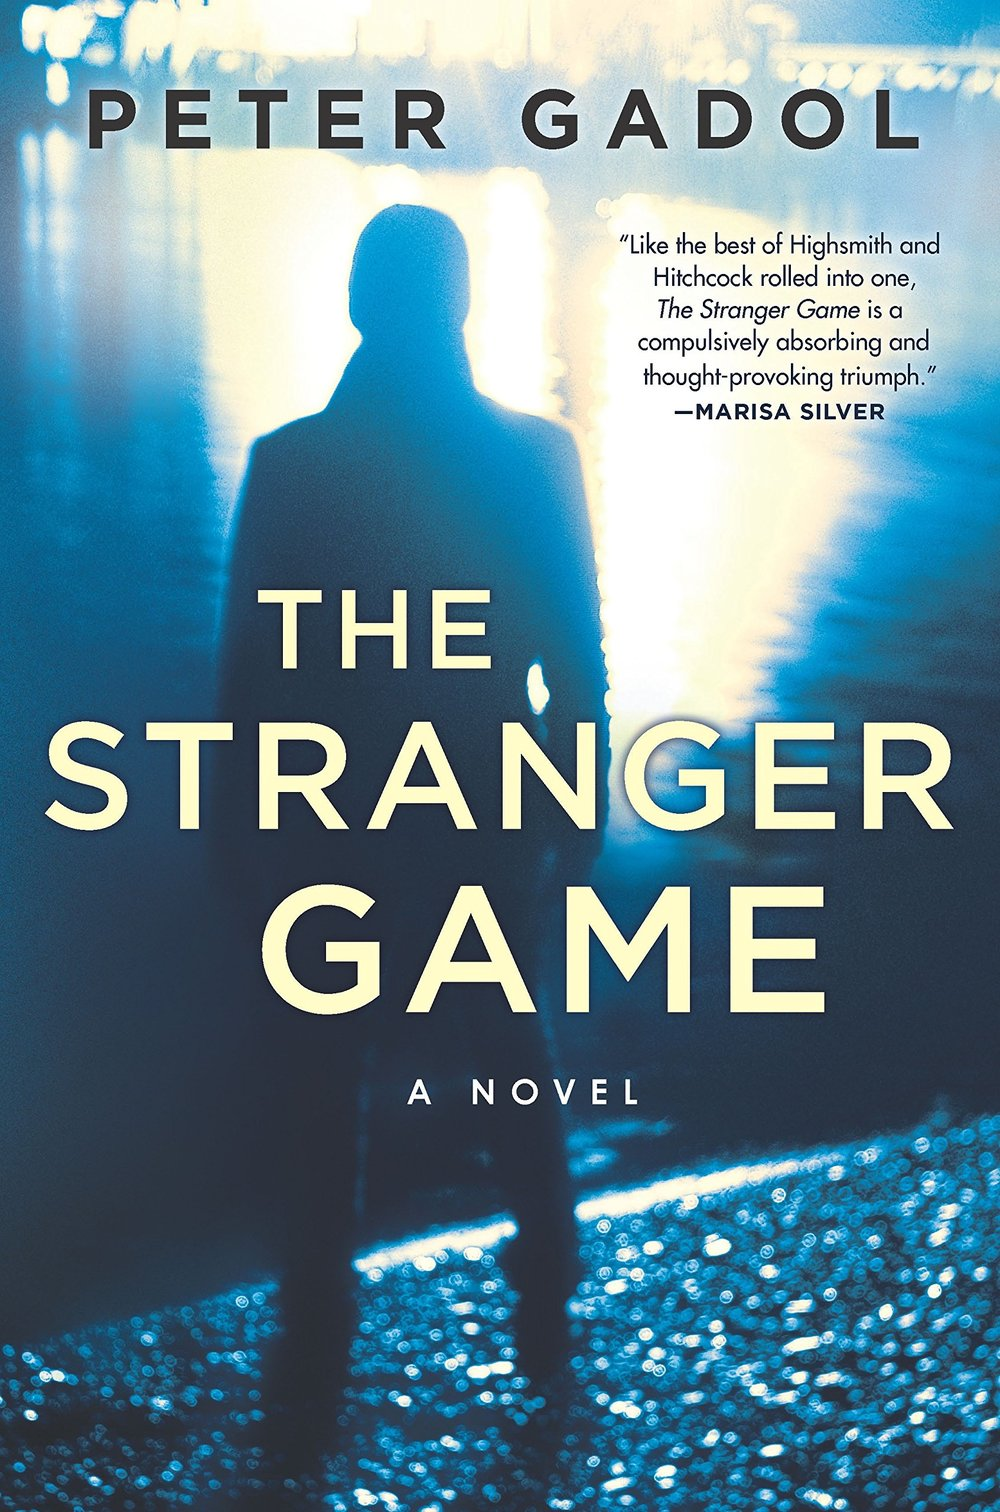 THE STRANGER GAME by Peter Gadol